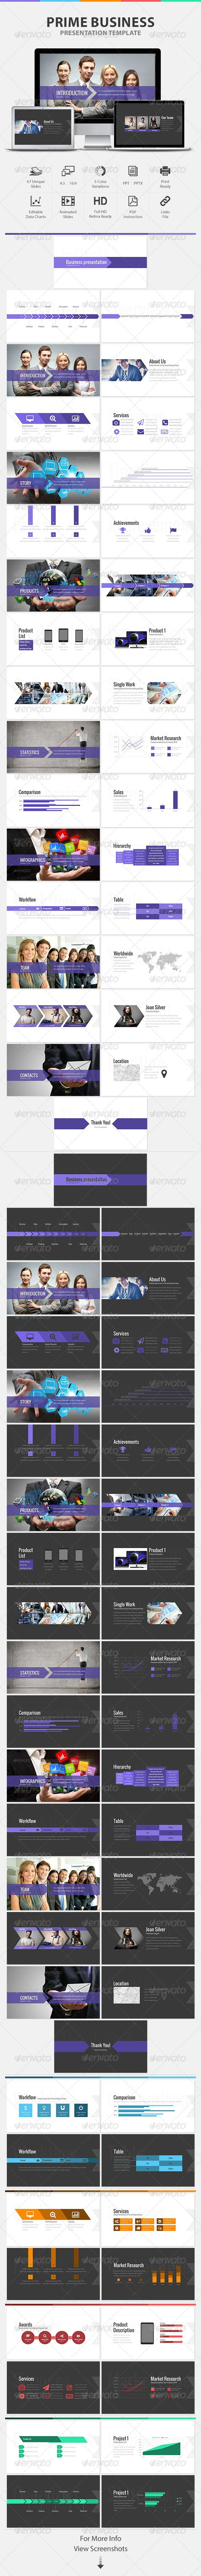 Prime Business Presentation Powerpoint Template (Powerpoint Templates)